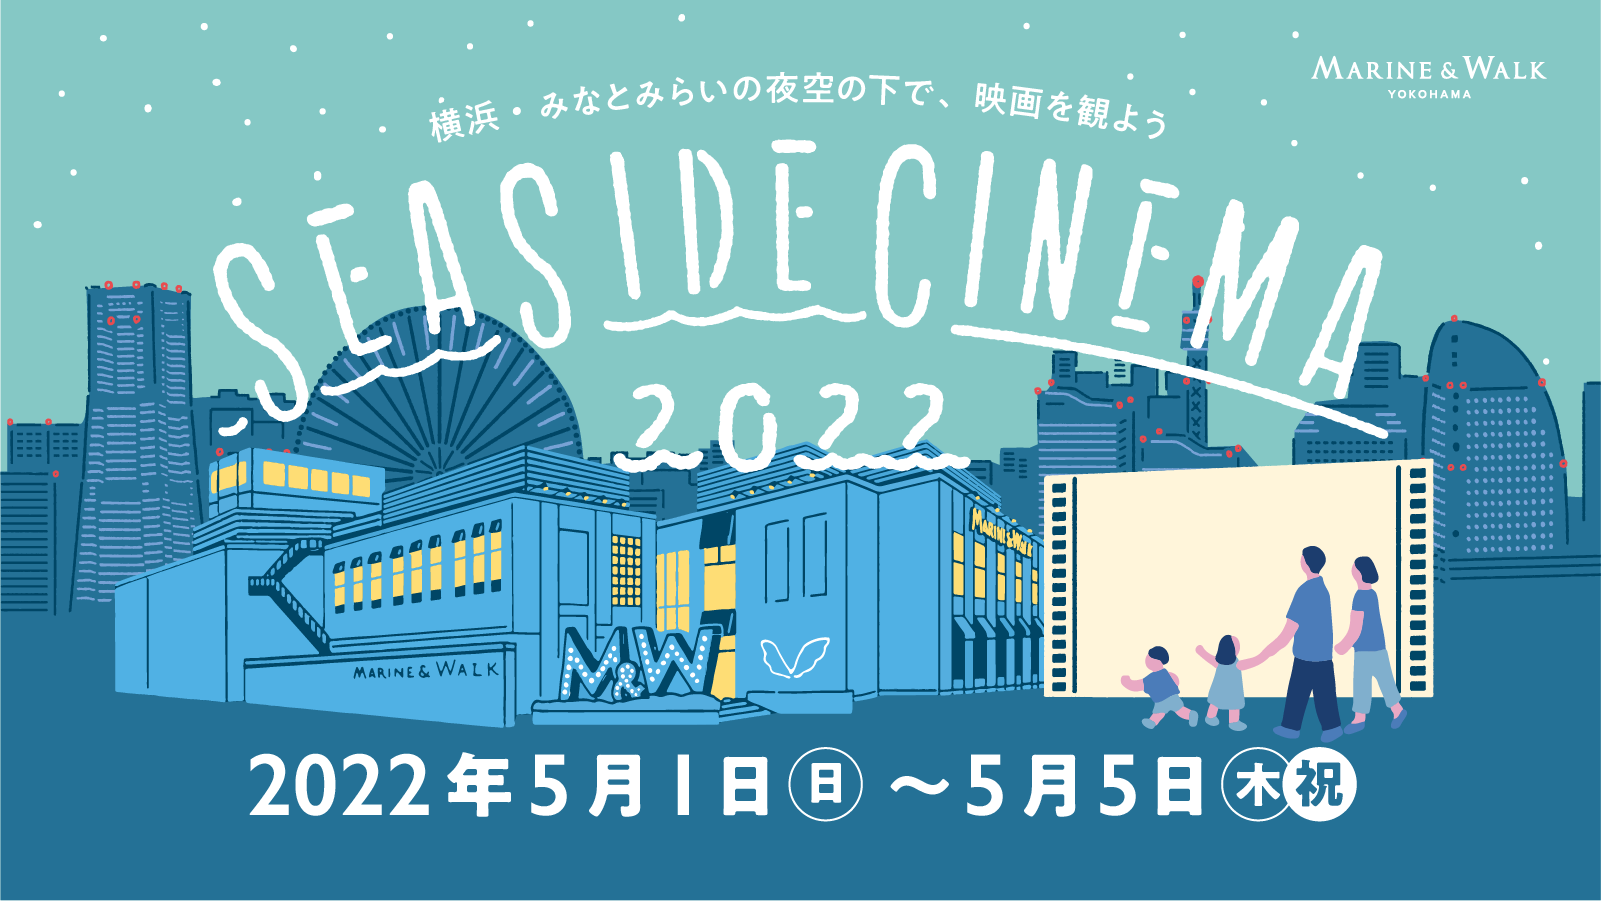 SEA SIDE CINEMA2021 2021.5.1sat - 5.5wed